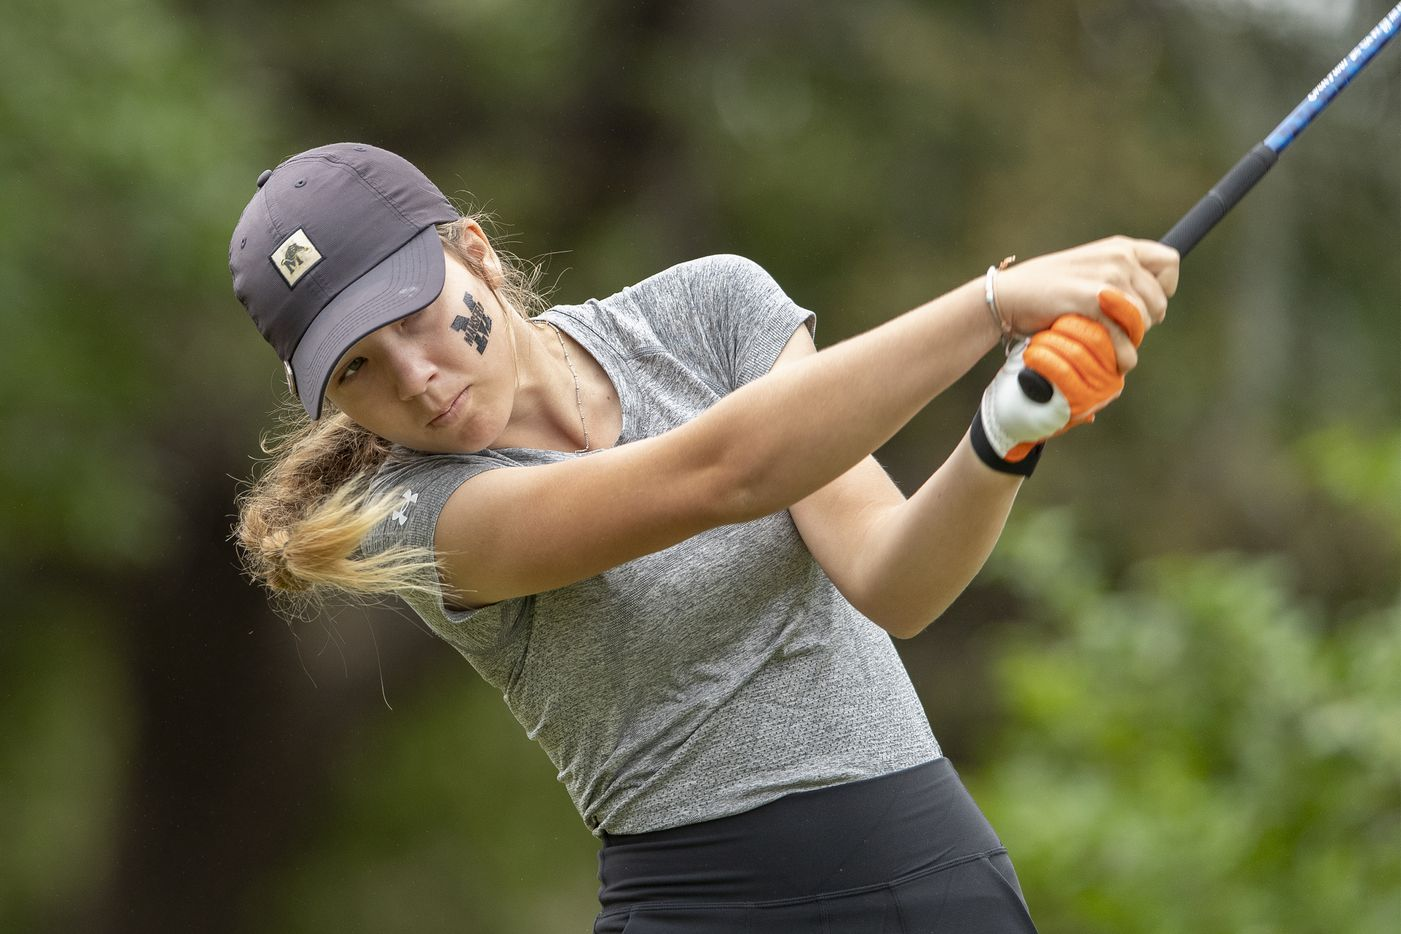 Mansfield's Abby Hirtzel hits from the 1st tee box during the final day of the UIL Class 5A girls golf tournament in Georgetown, Tuesday, May 11, 2021. (Stephen Spillman/Special Contributor)